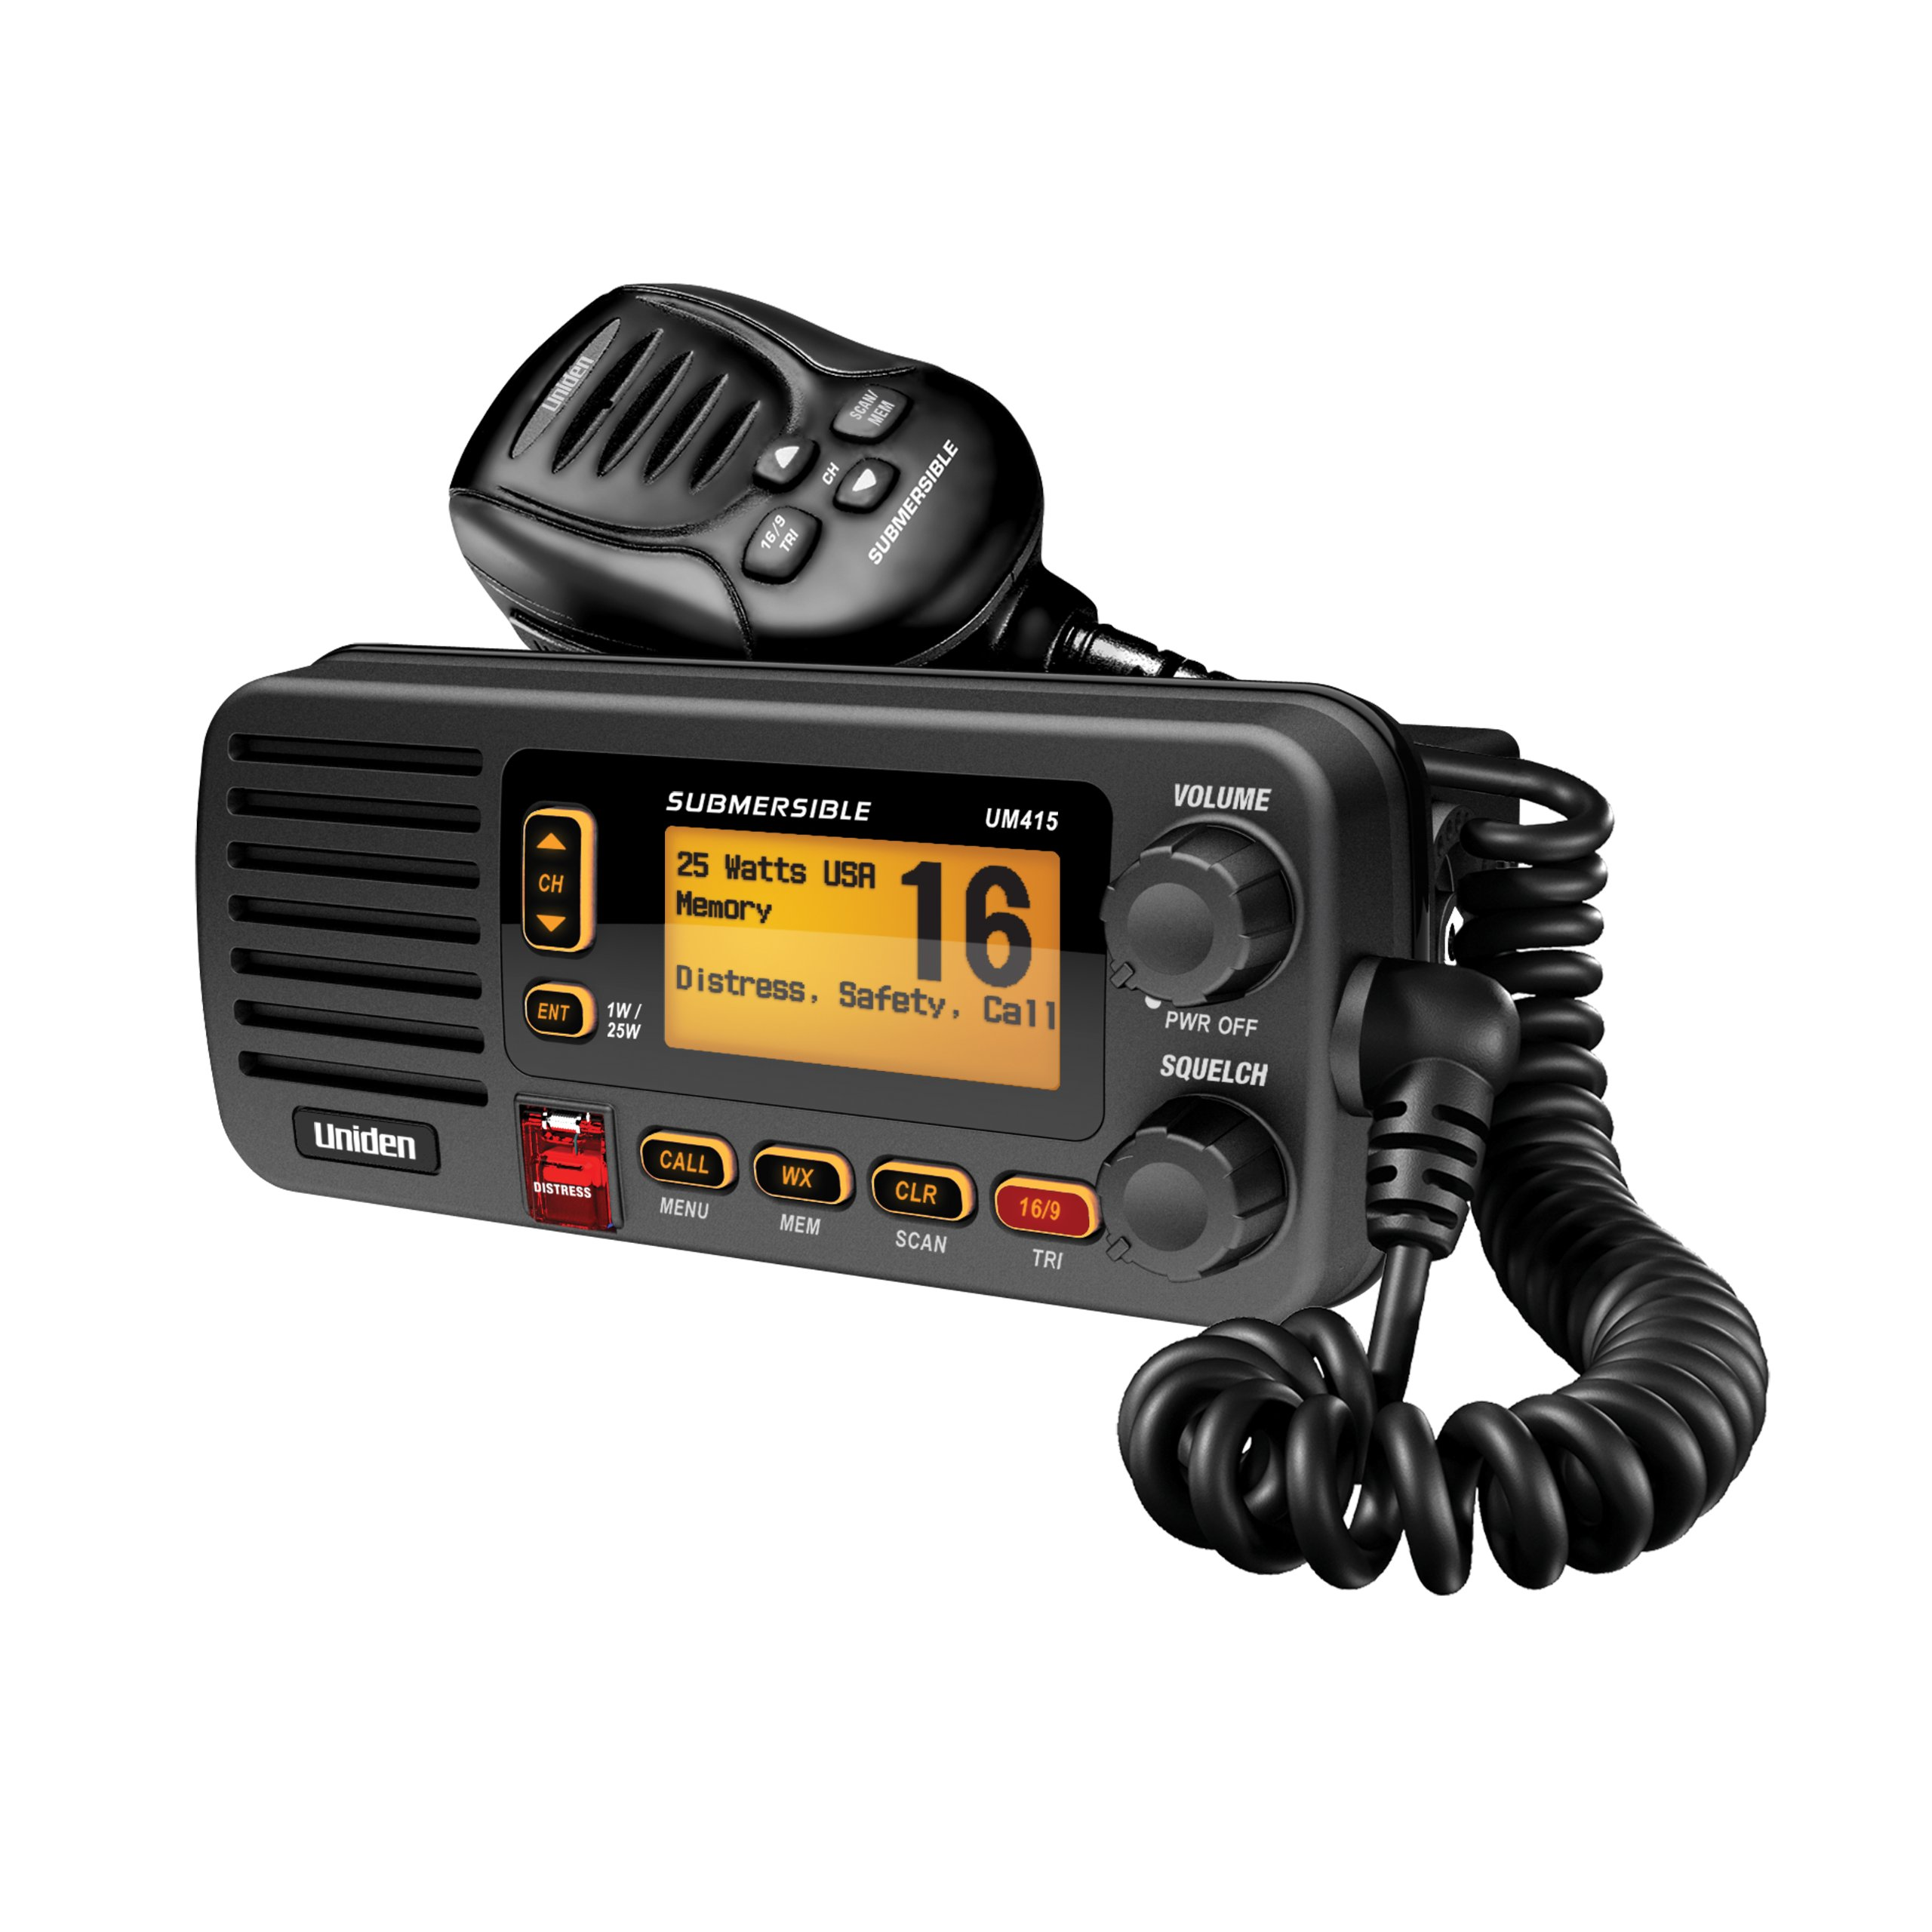 Uniden UM415 Advanced Fixed Mount VHF Marine Radio DSC, Ultra Compact Rugged Construction and JIS7 Submersible (New replacement model, Replaced by Uniden UM435BK) by Uniden